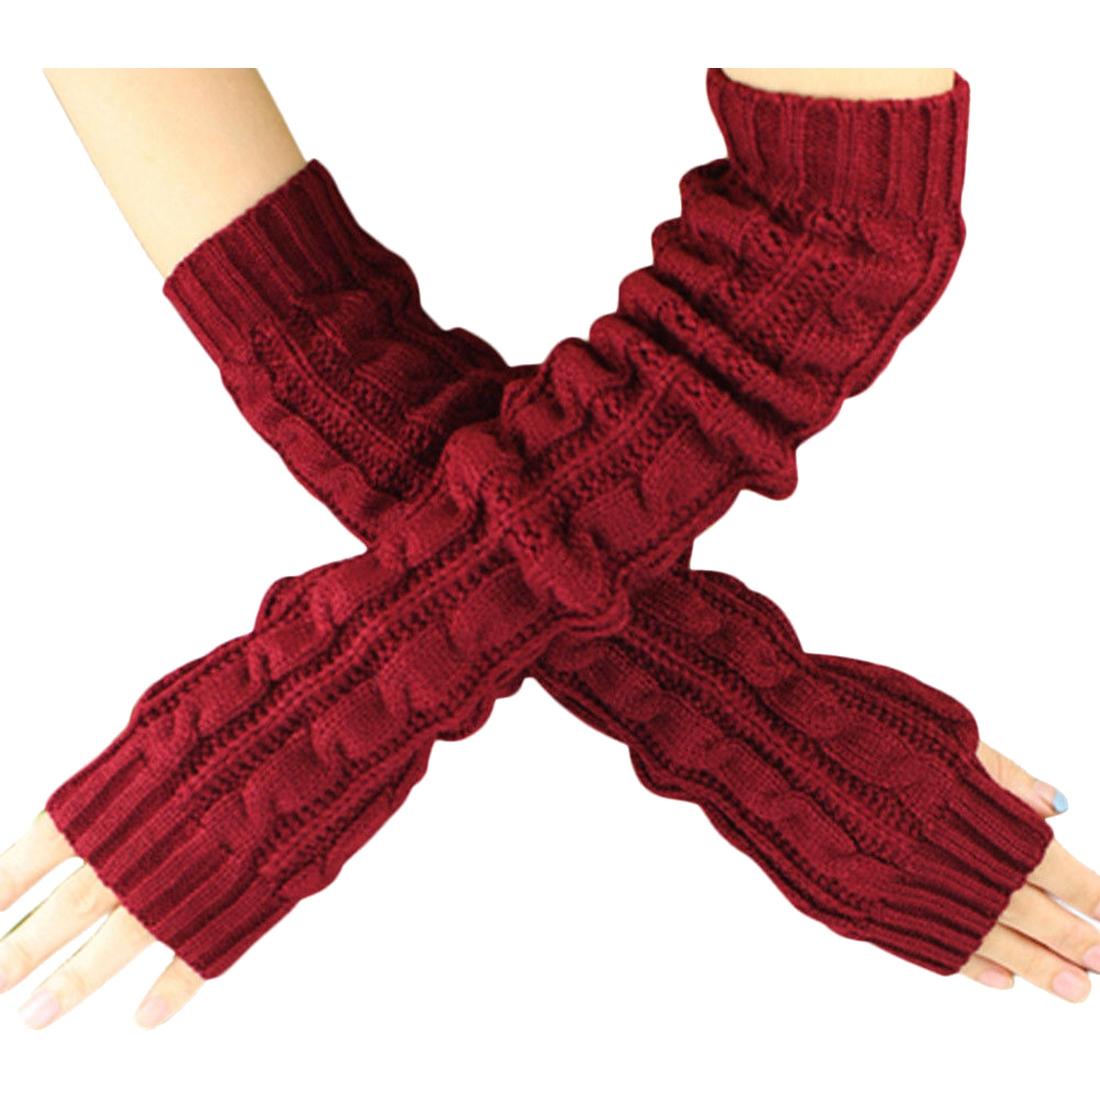 Fashion Winter Women Men Gloves Unisex Arm Warmer Long Fingerless knit Mitten wine red